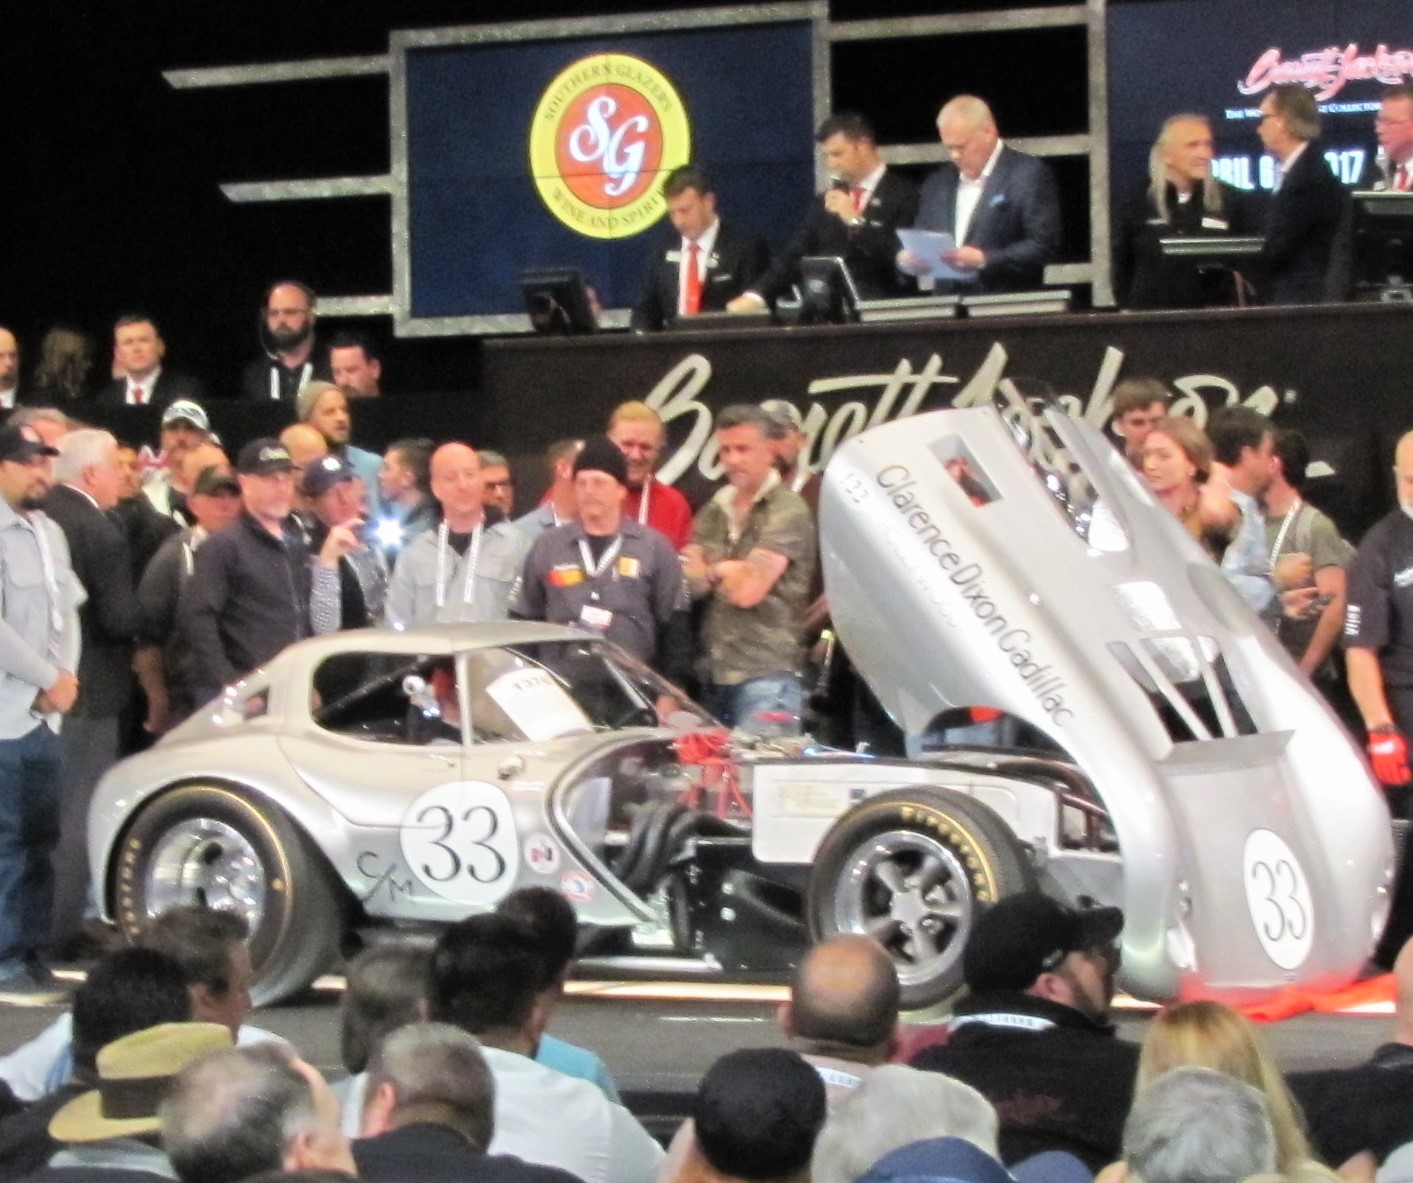 Super-sized Barrett-Jackson Is Bucket-list Auction That